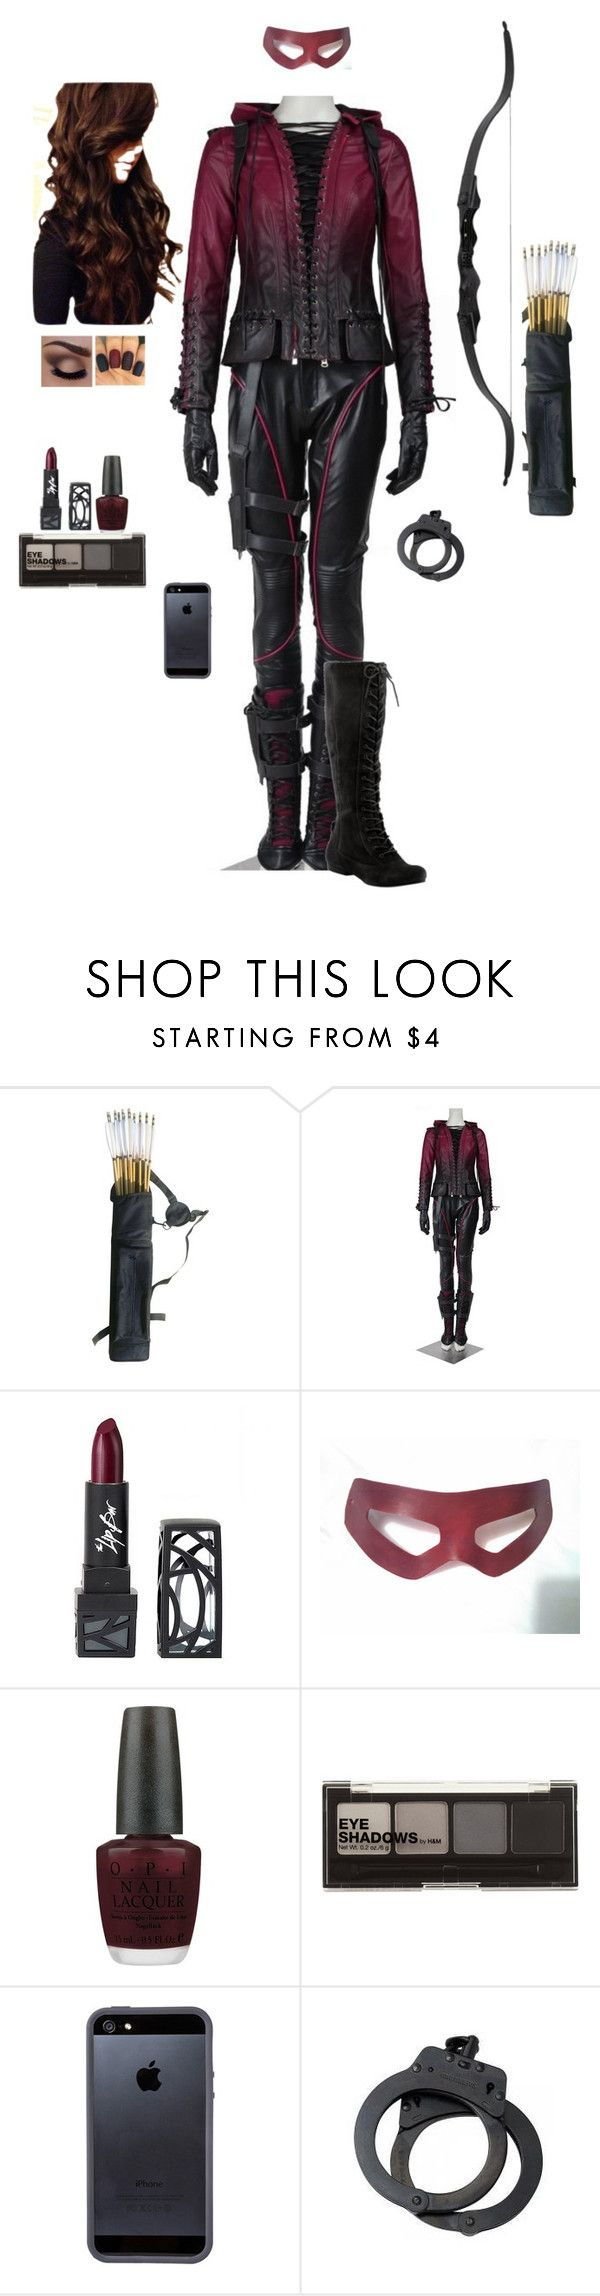 """""""Assassin In The Street"""" by gone-girl ❤ liked on Polyvore featuring Nine West, The Lip Bar, OPI, H&M and Tavik Swimwear"""